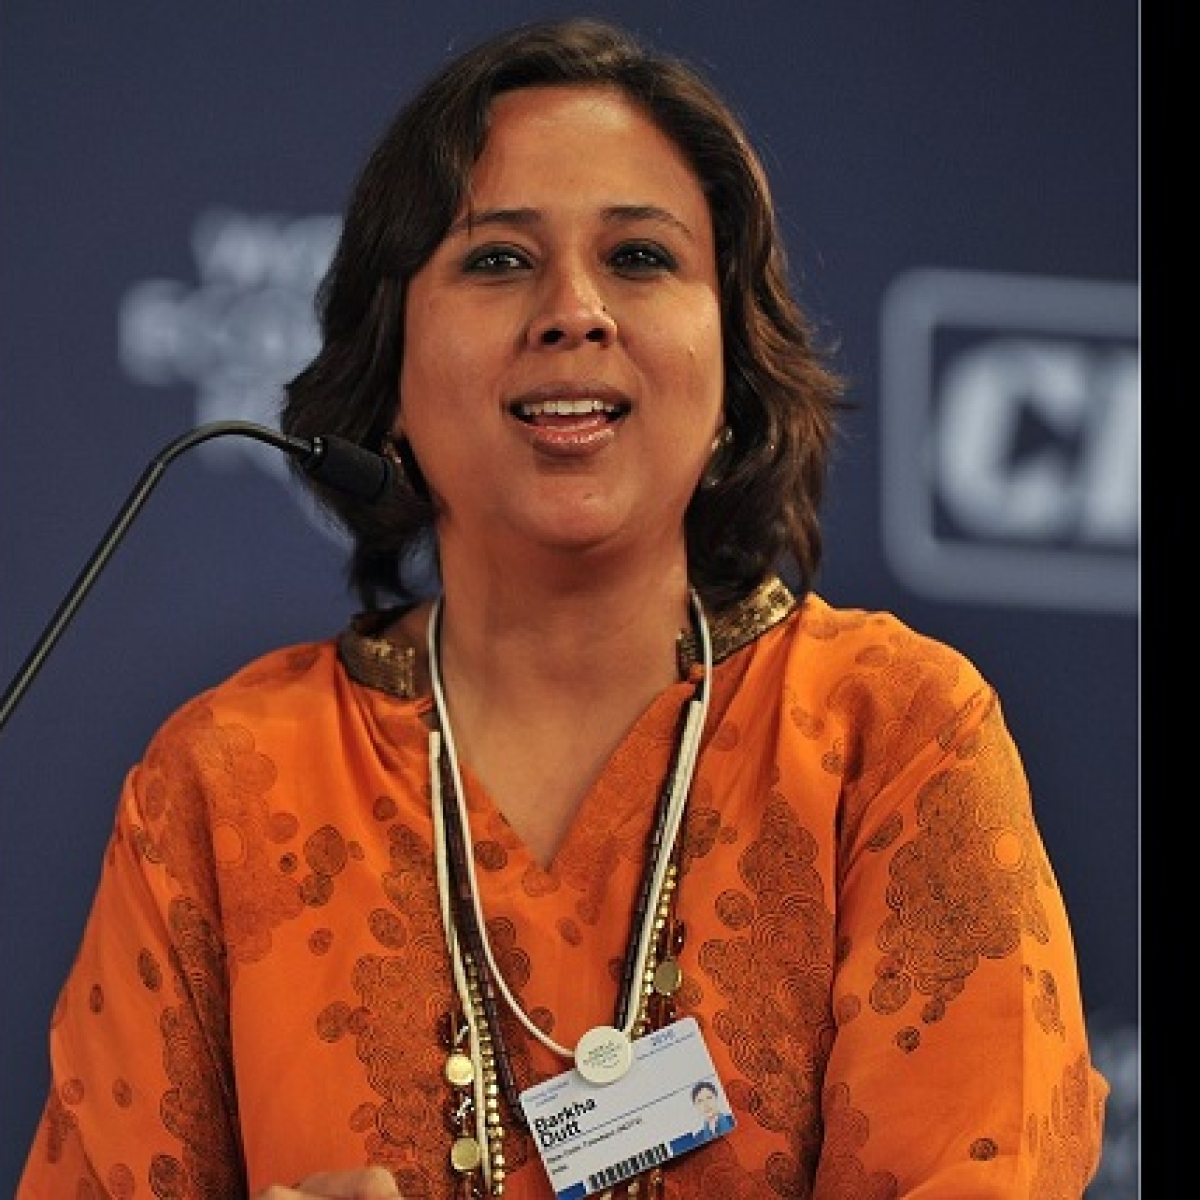 Unnao Double Murder Case: FIR against journalist Barkha Dutt and seven others for misleading tweets